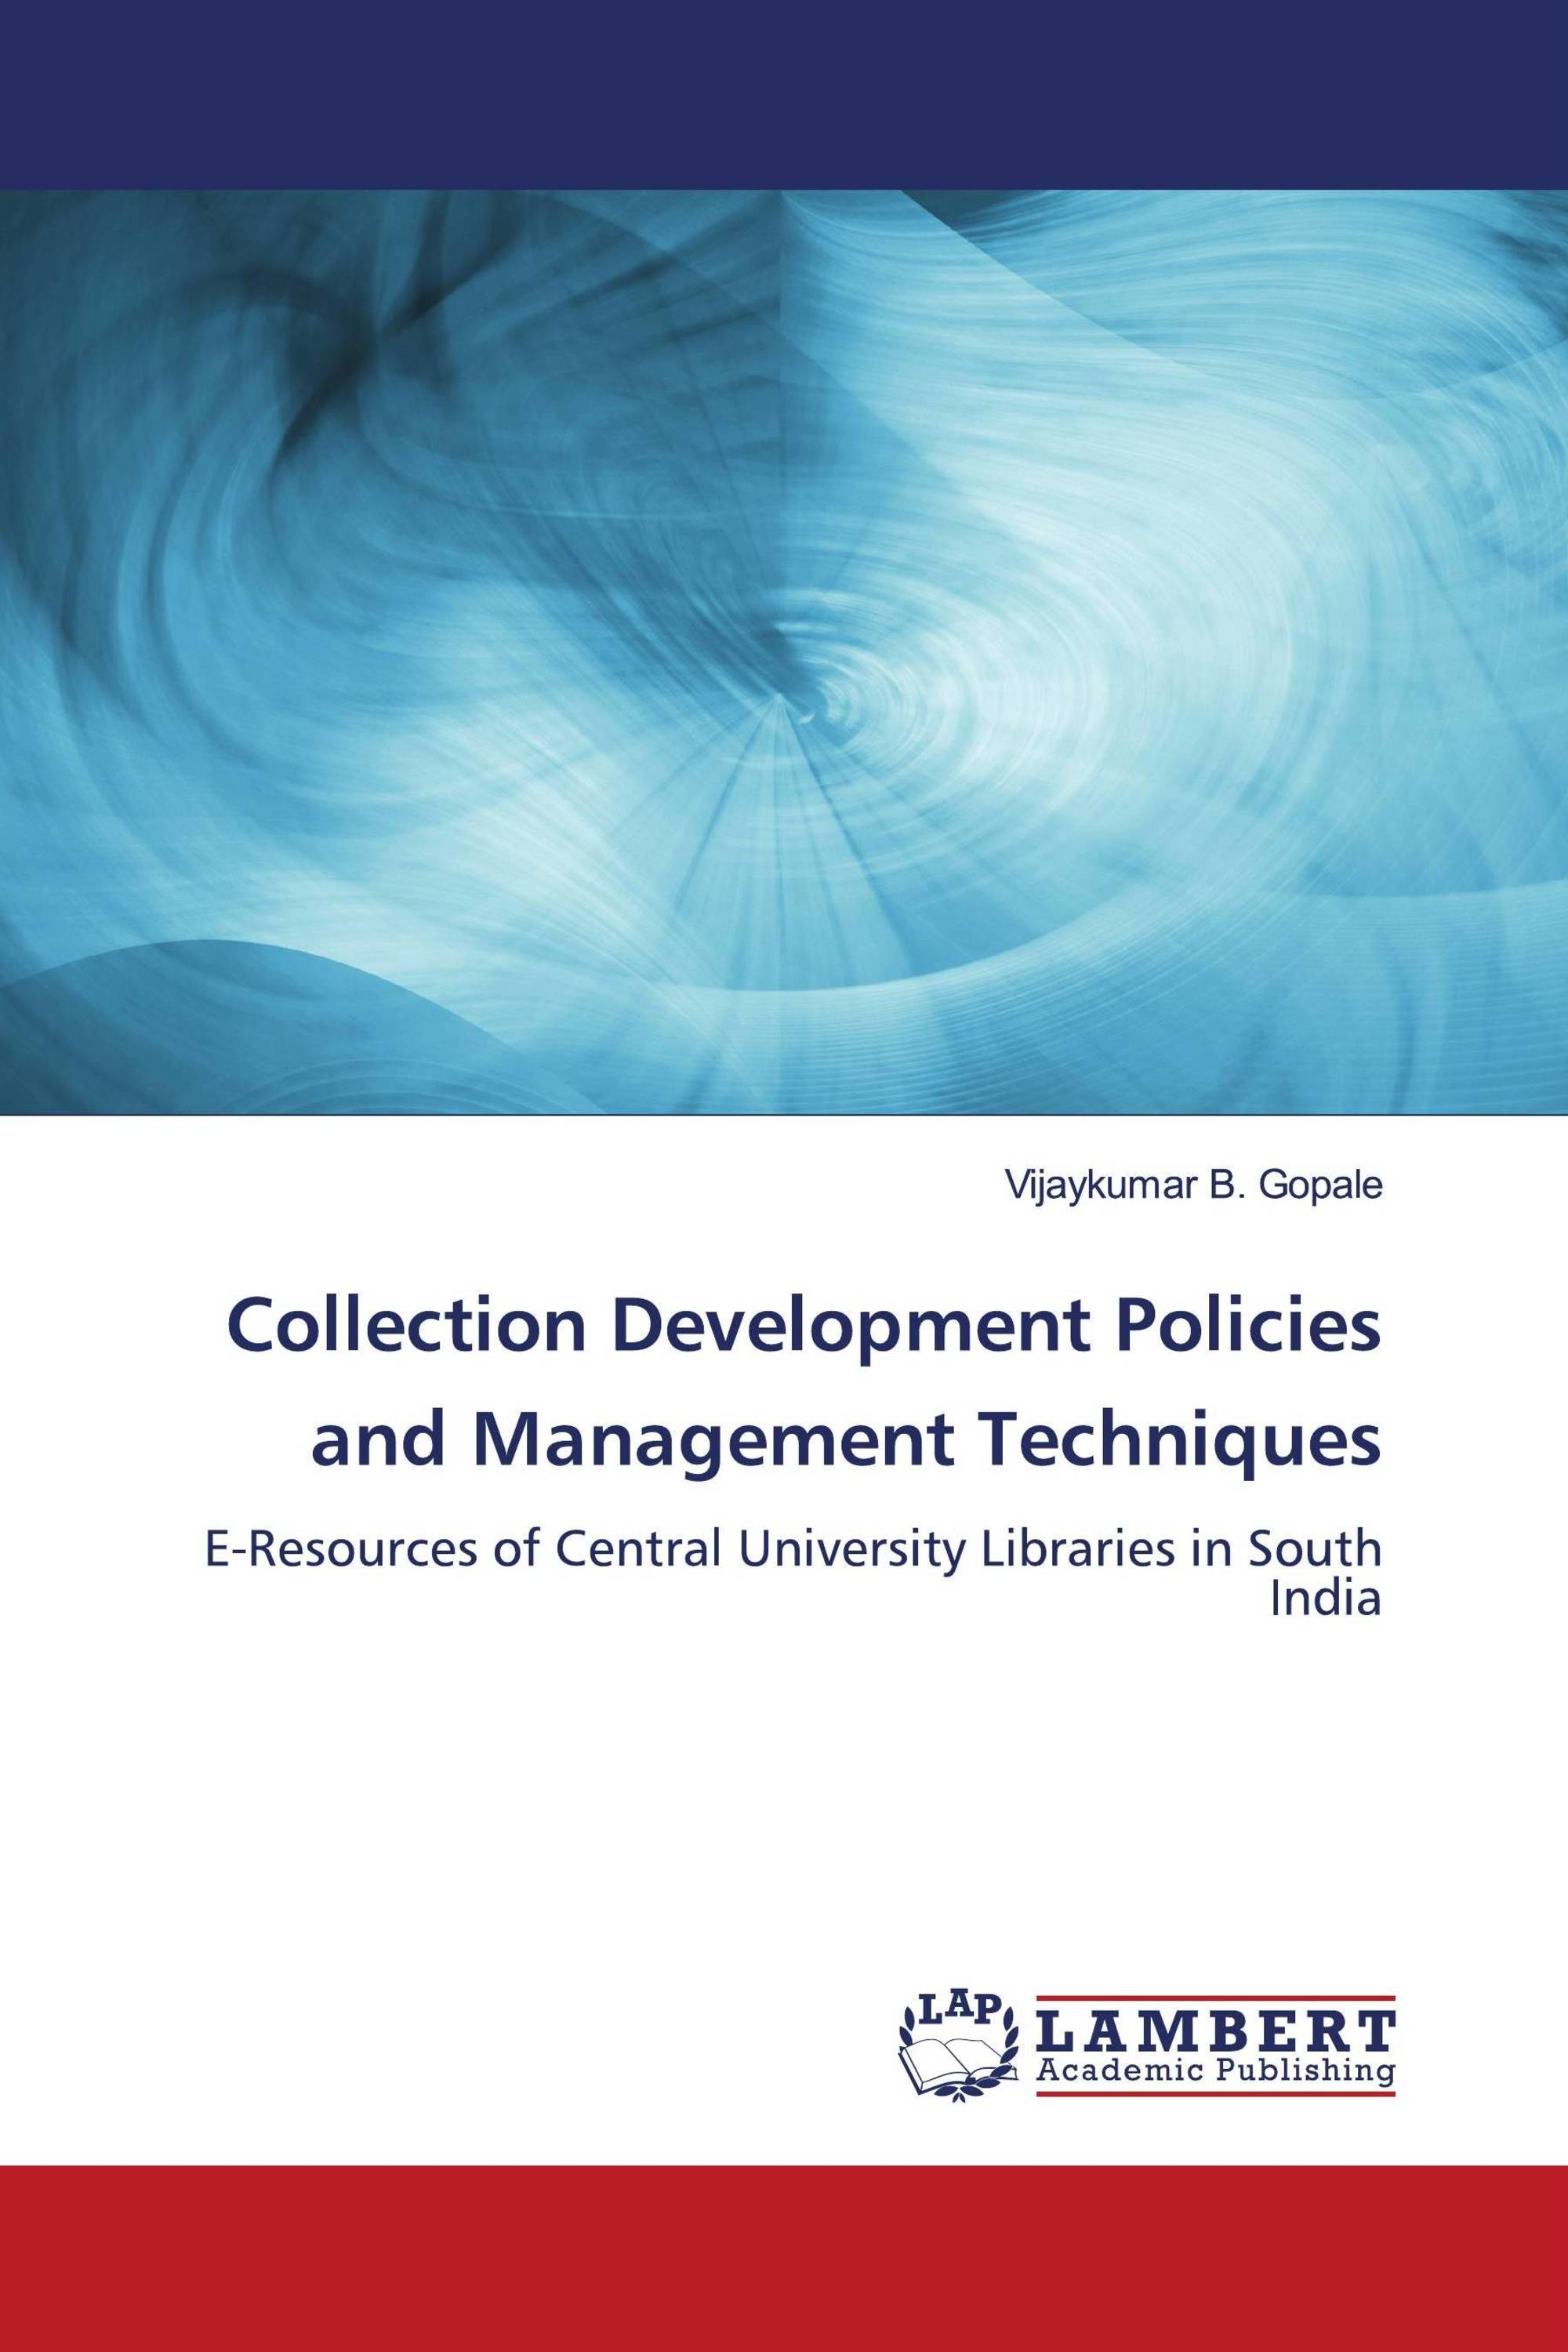 Collection Development Policies and Management Techniques